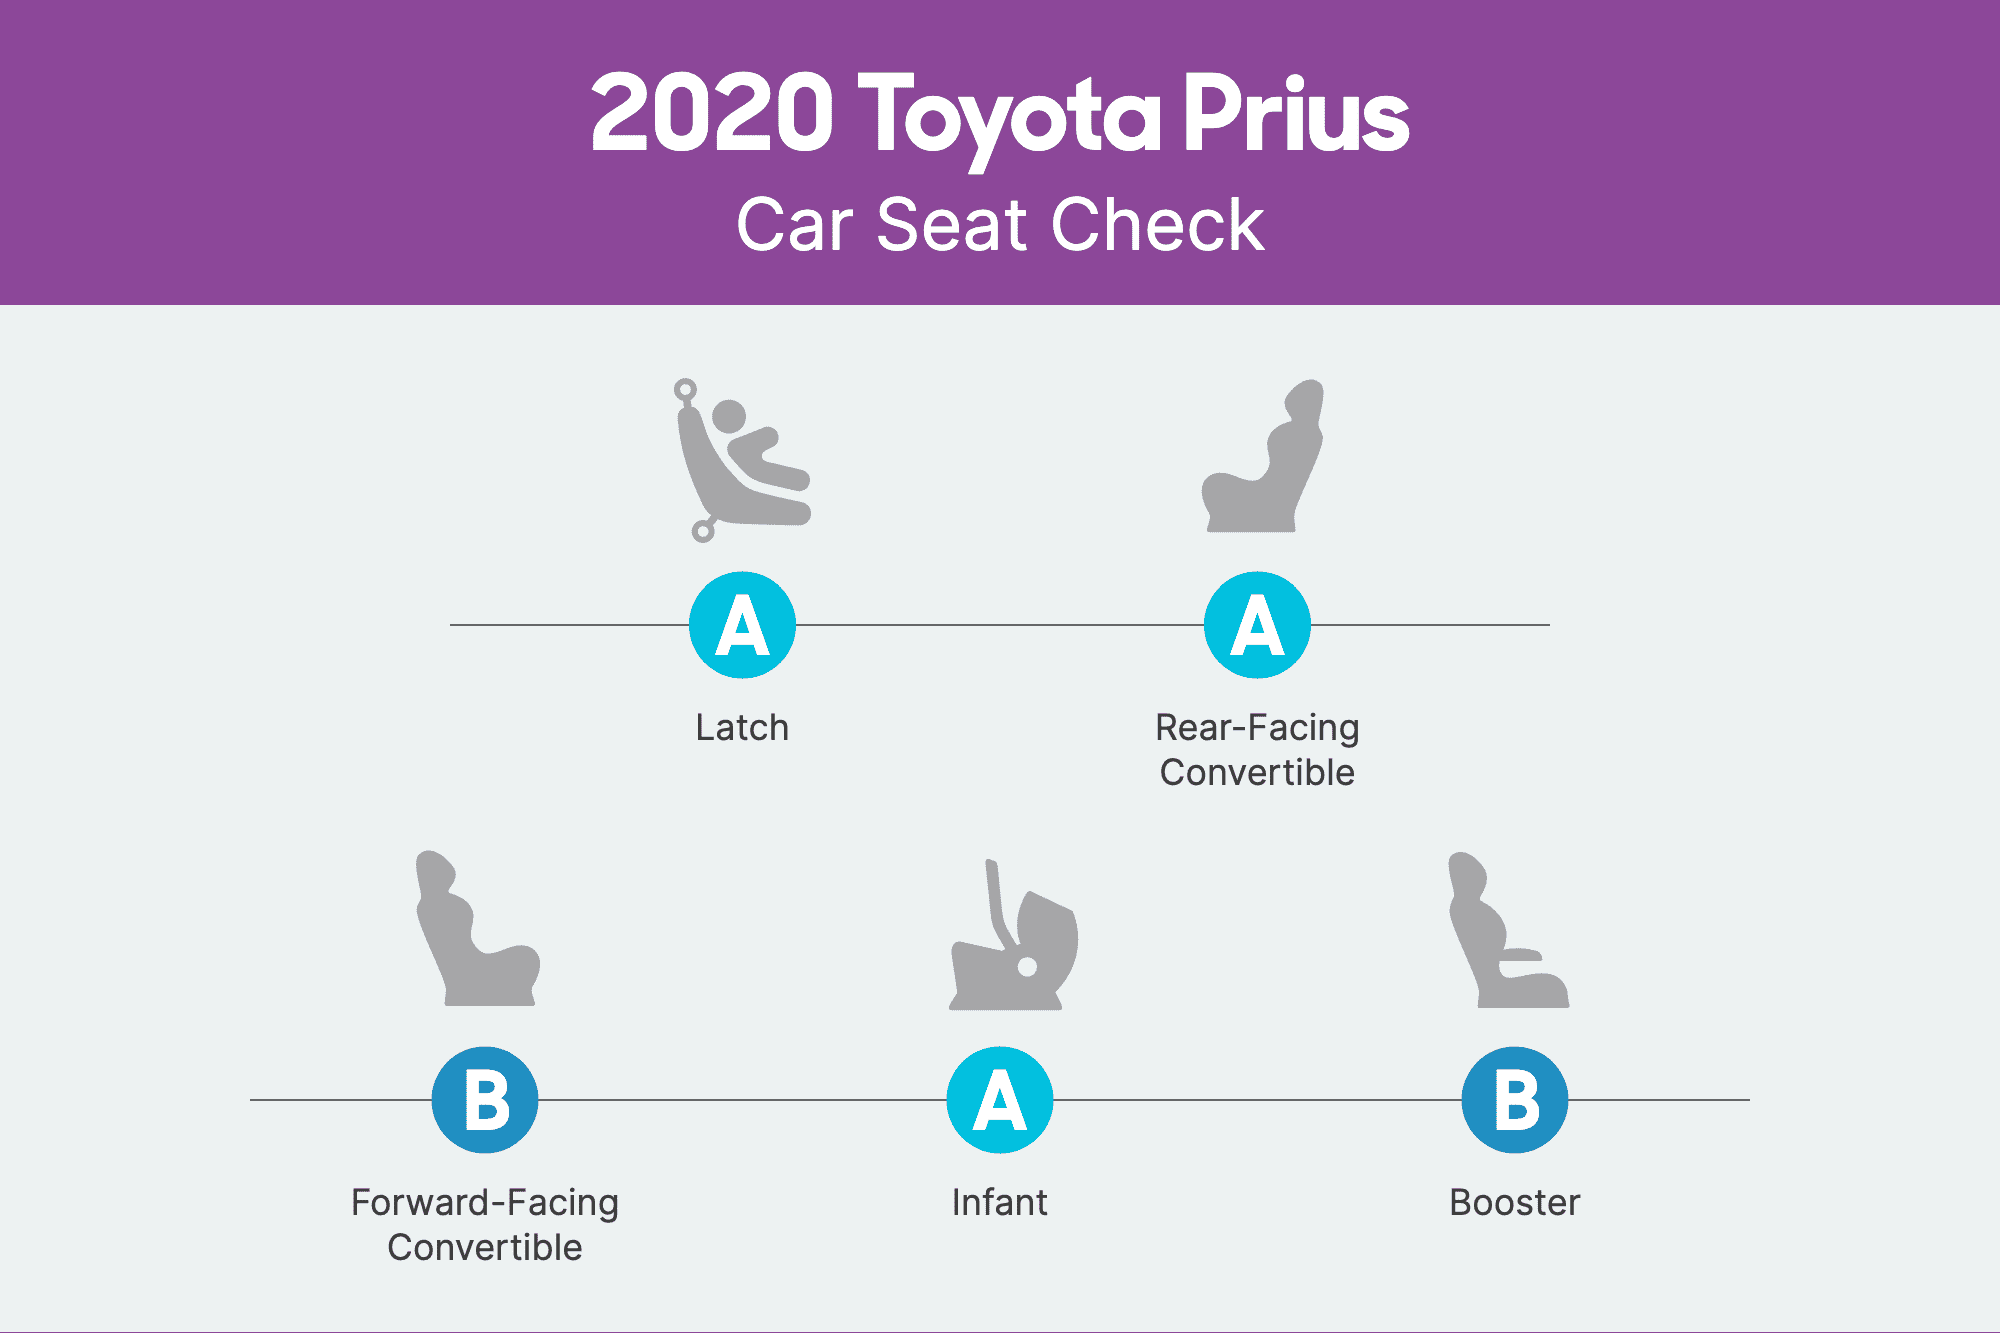 How Do Car Seats Fit in a 2020 Toyota Prius?